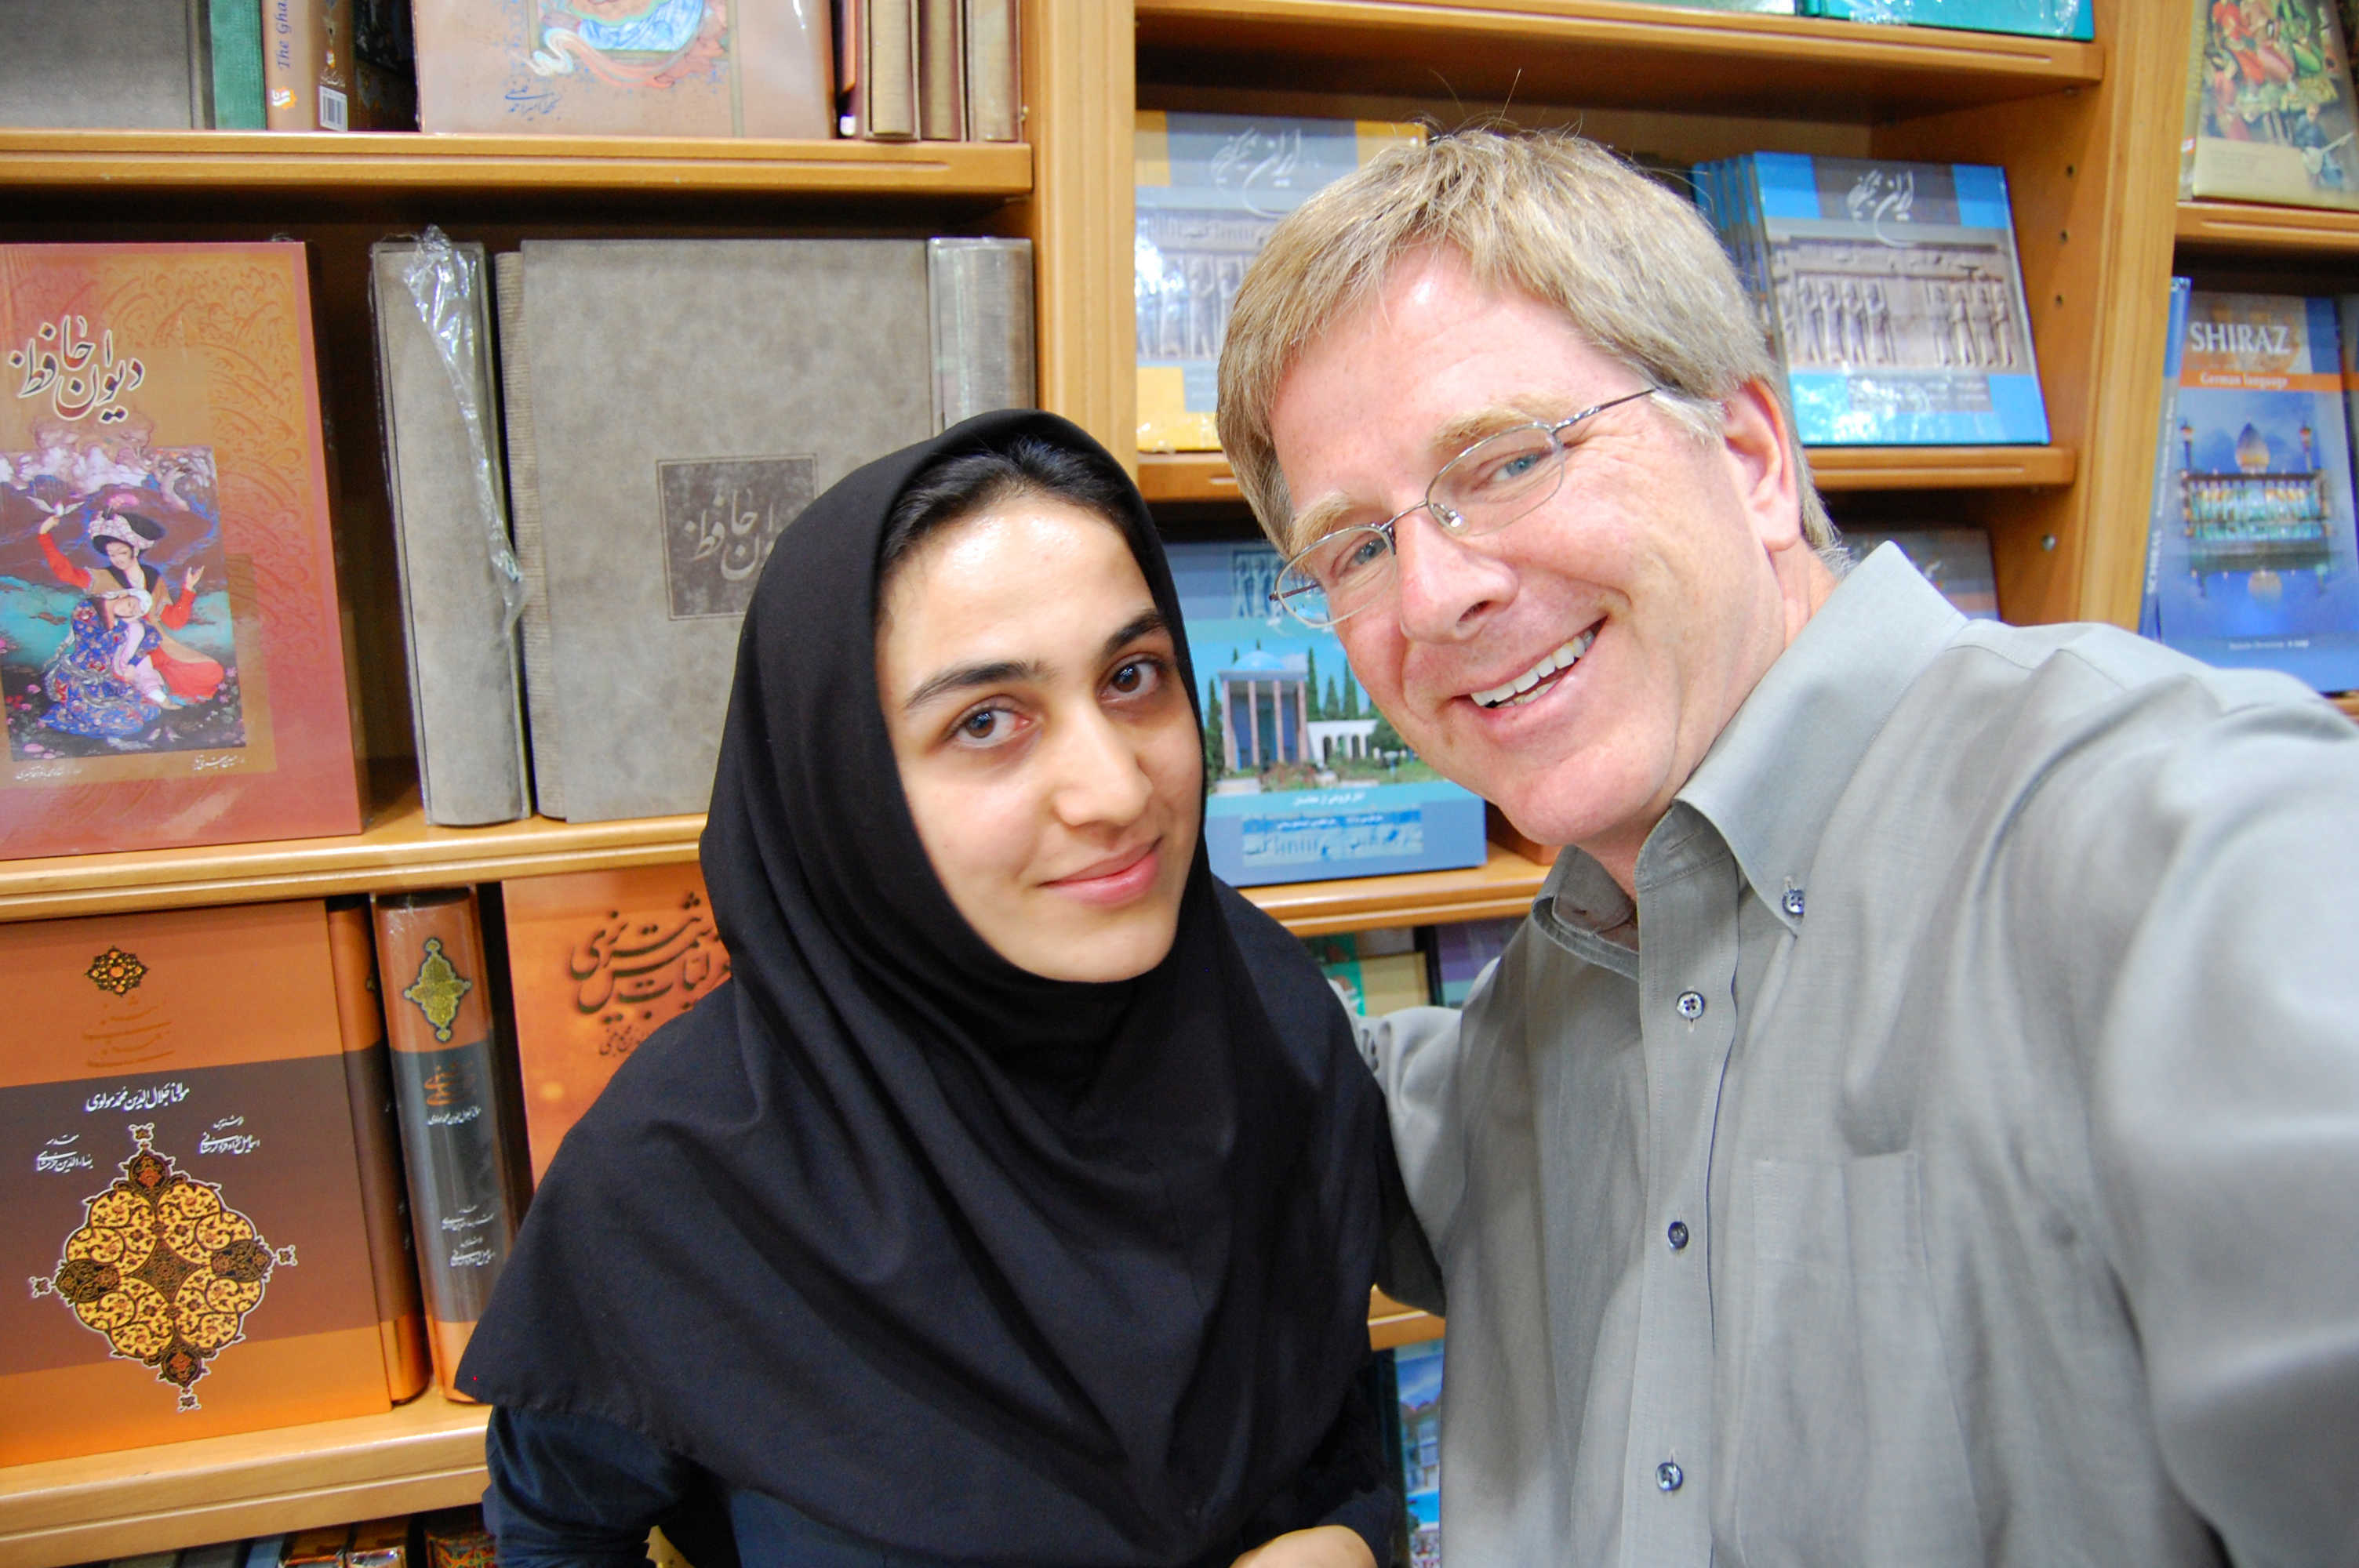 Rick Steves is introduced to fine poetry books in Iran